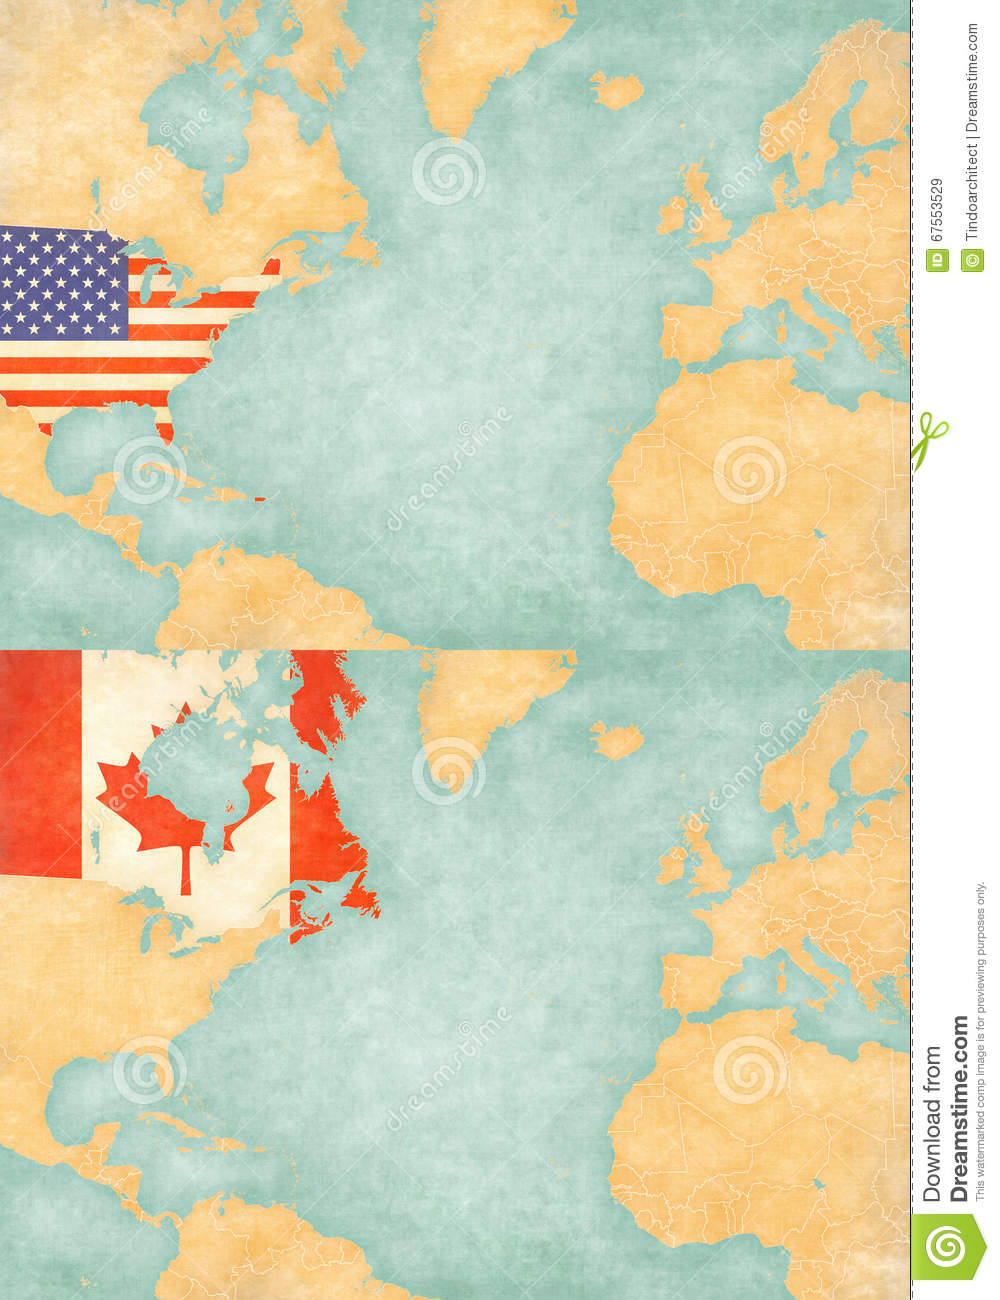 Map Of North Atlantic - United States And Canada Stock Illustration ...